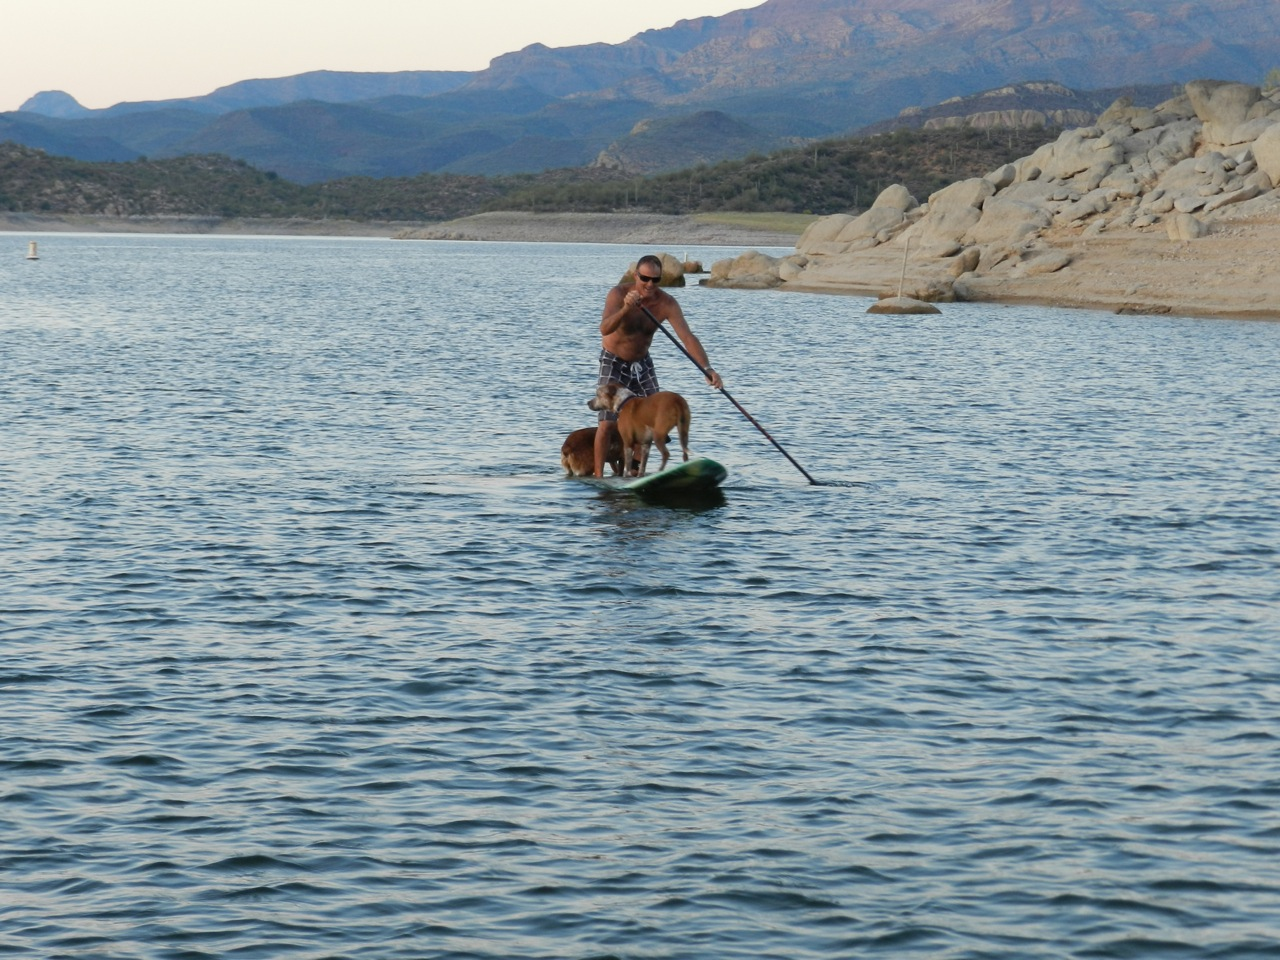 Paddle boarding in Phoenix